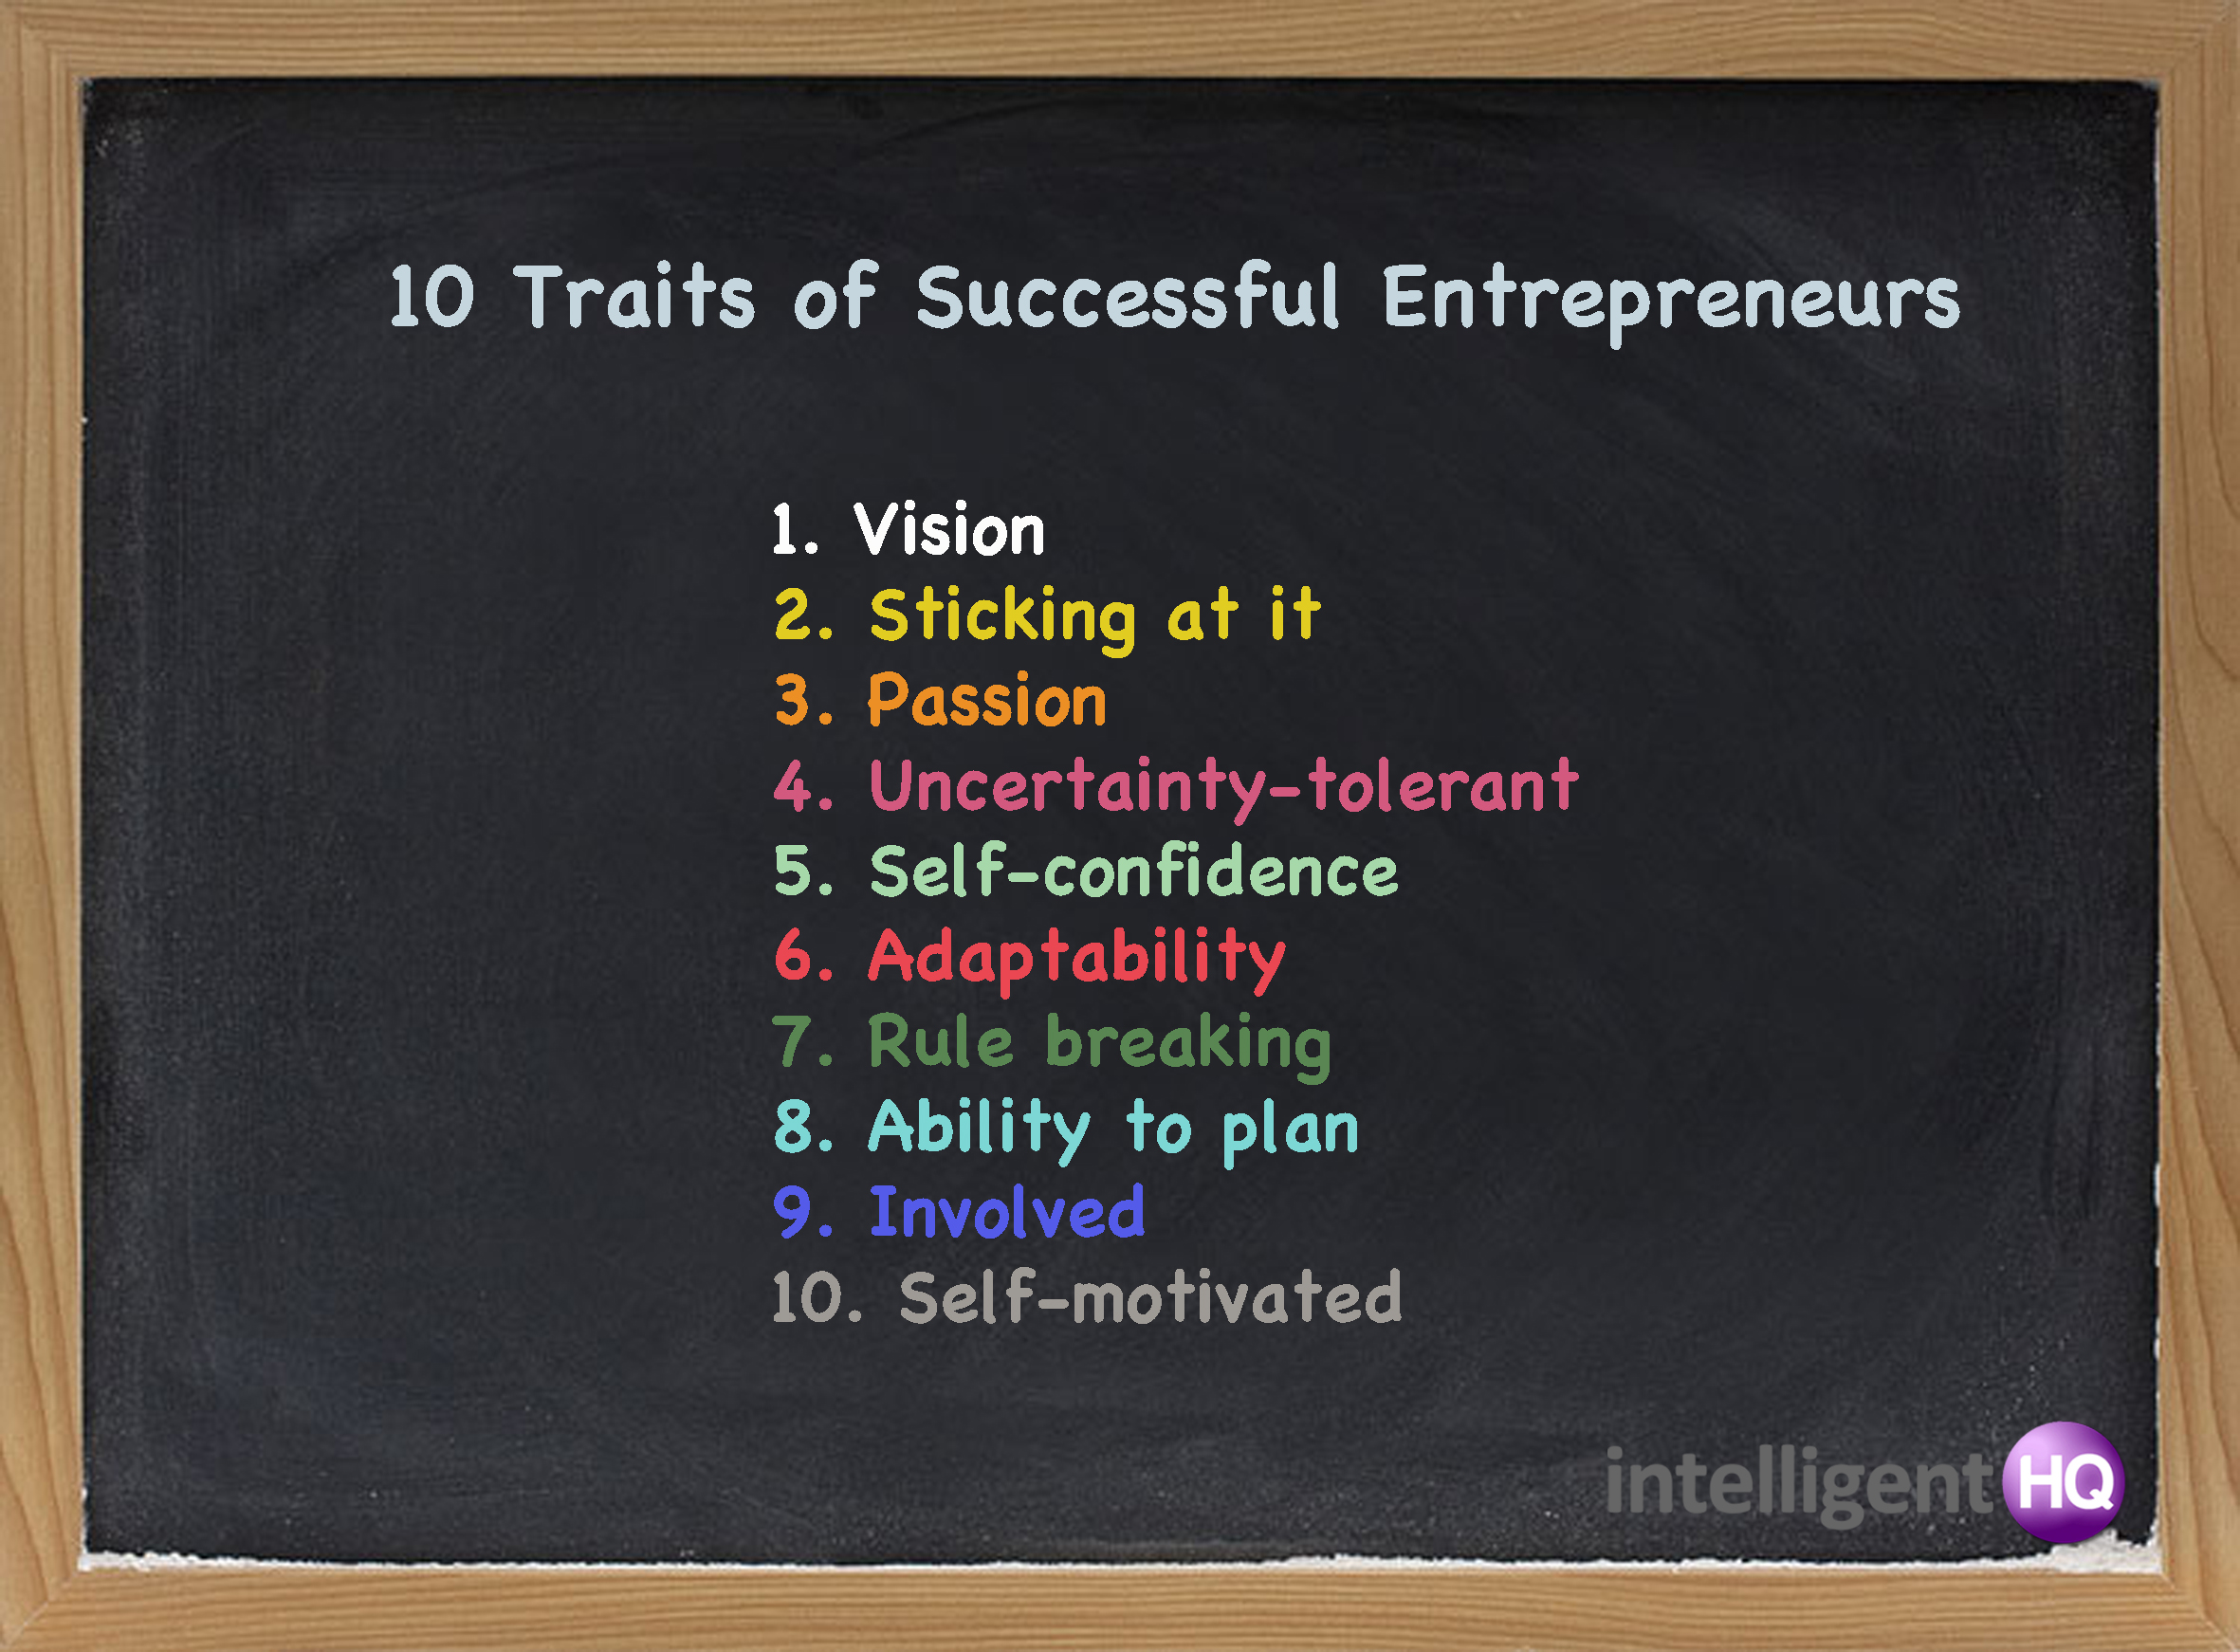 10 Traits of Successful Entrepreneurs. intelligenthq